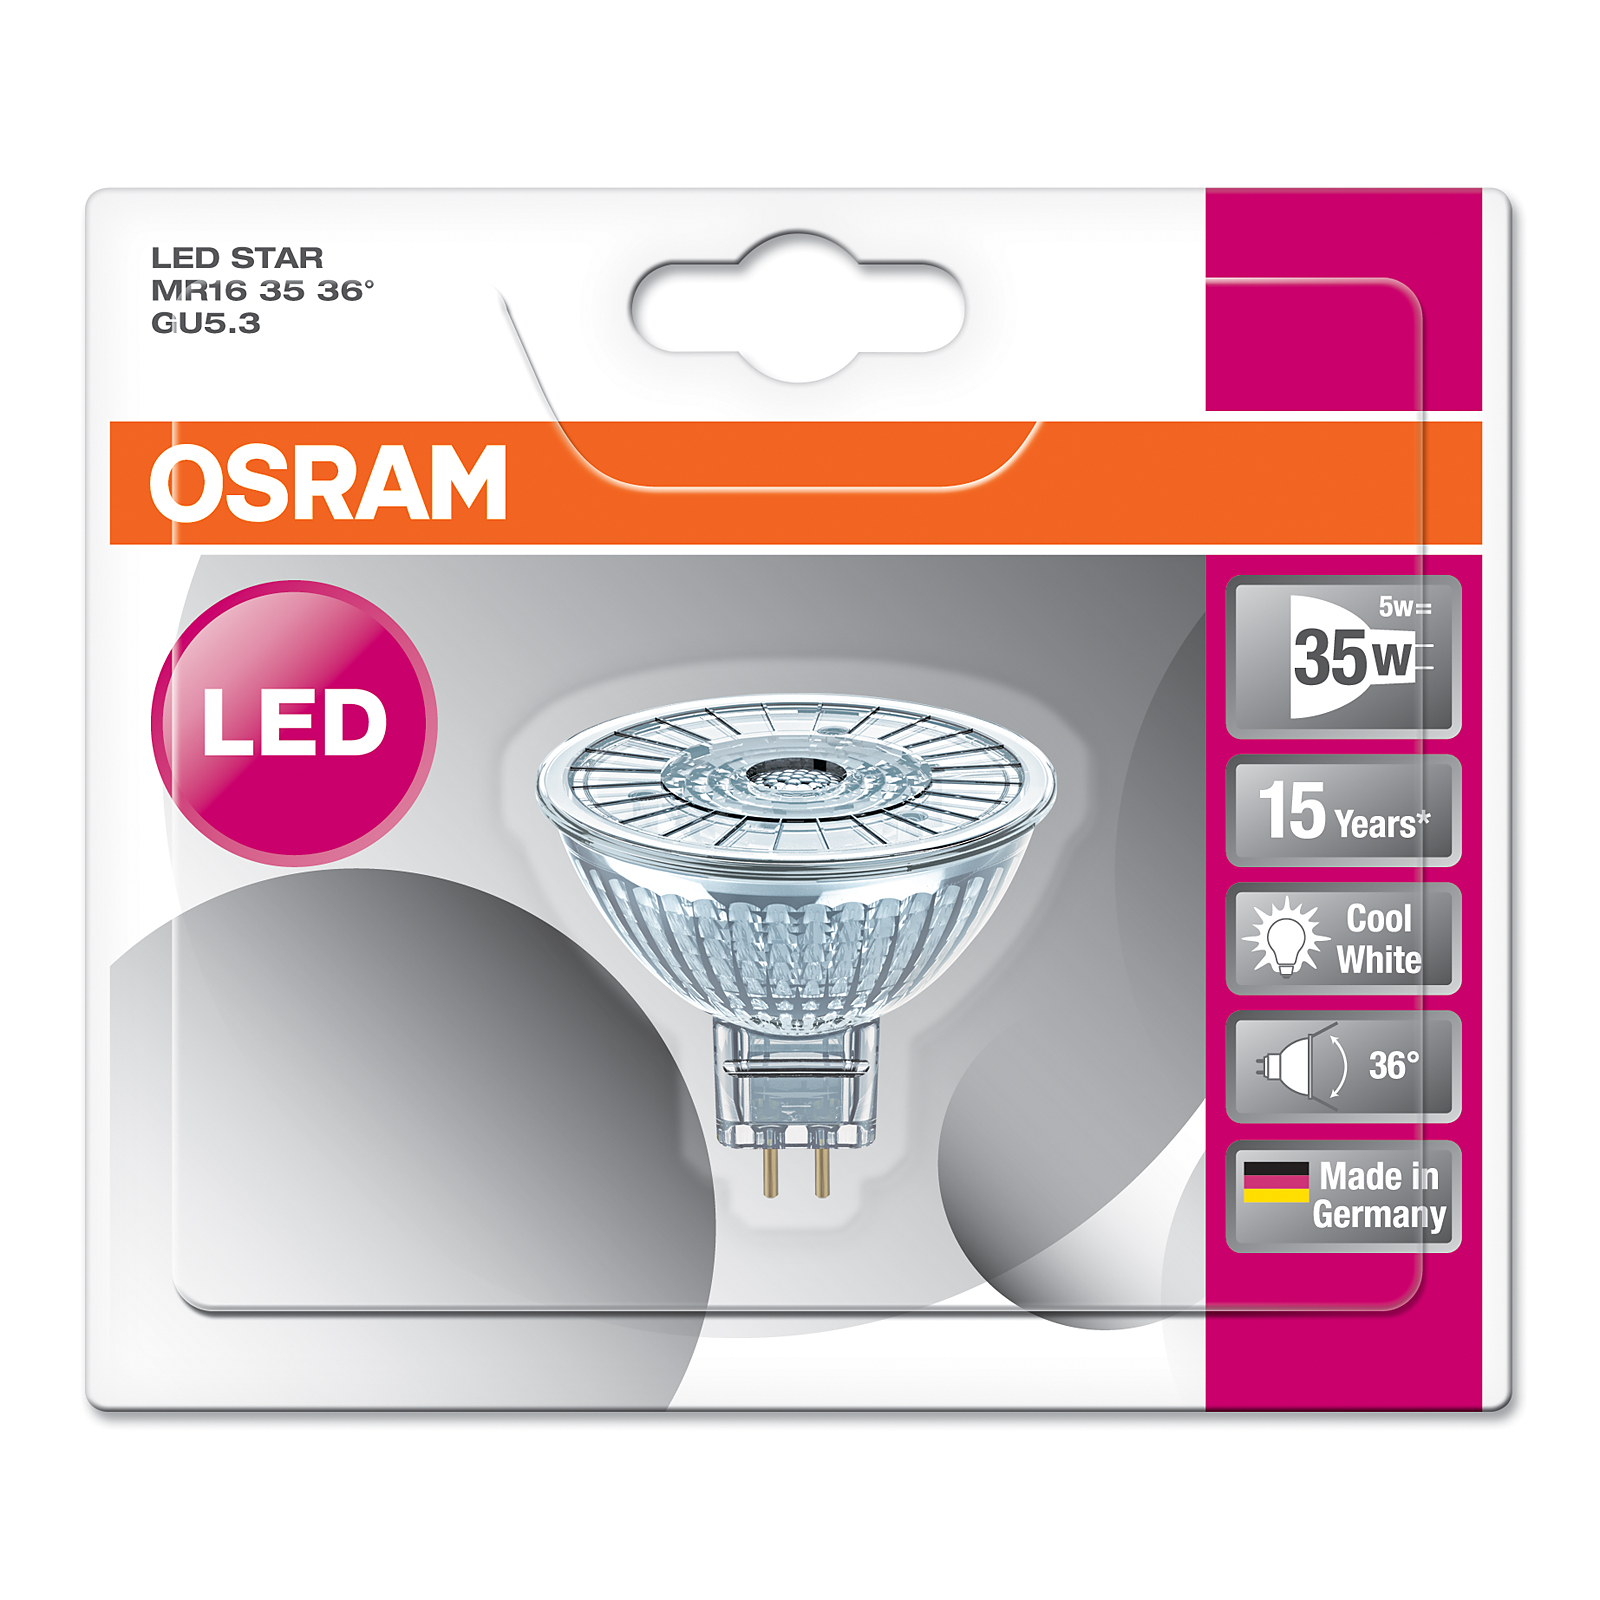 osram led star mr16 gu5 3 5 w wie 35 w 350 lm 36. Black Bedroom Furniture Sets. Home Design Ideas